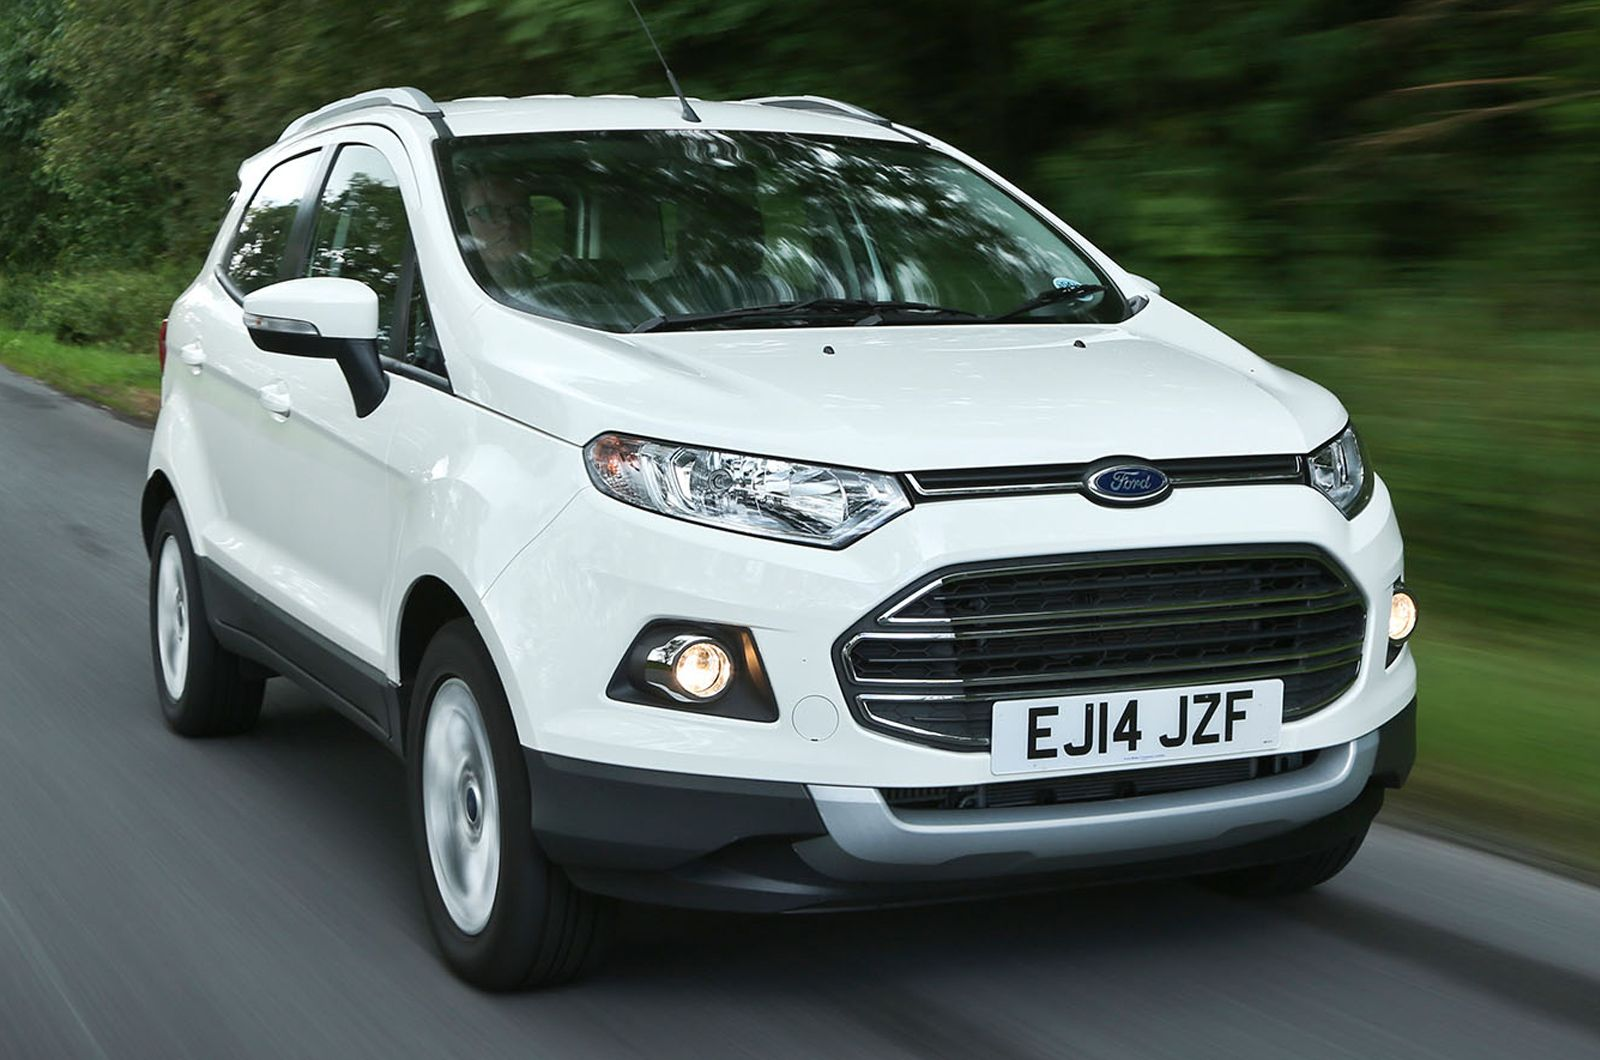 big automobile company when launched ecosport it has become fanfare in greater than nbsp years down the line it s far nevertheless auto maker ford s